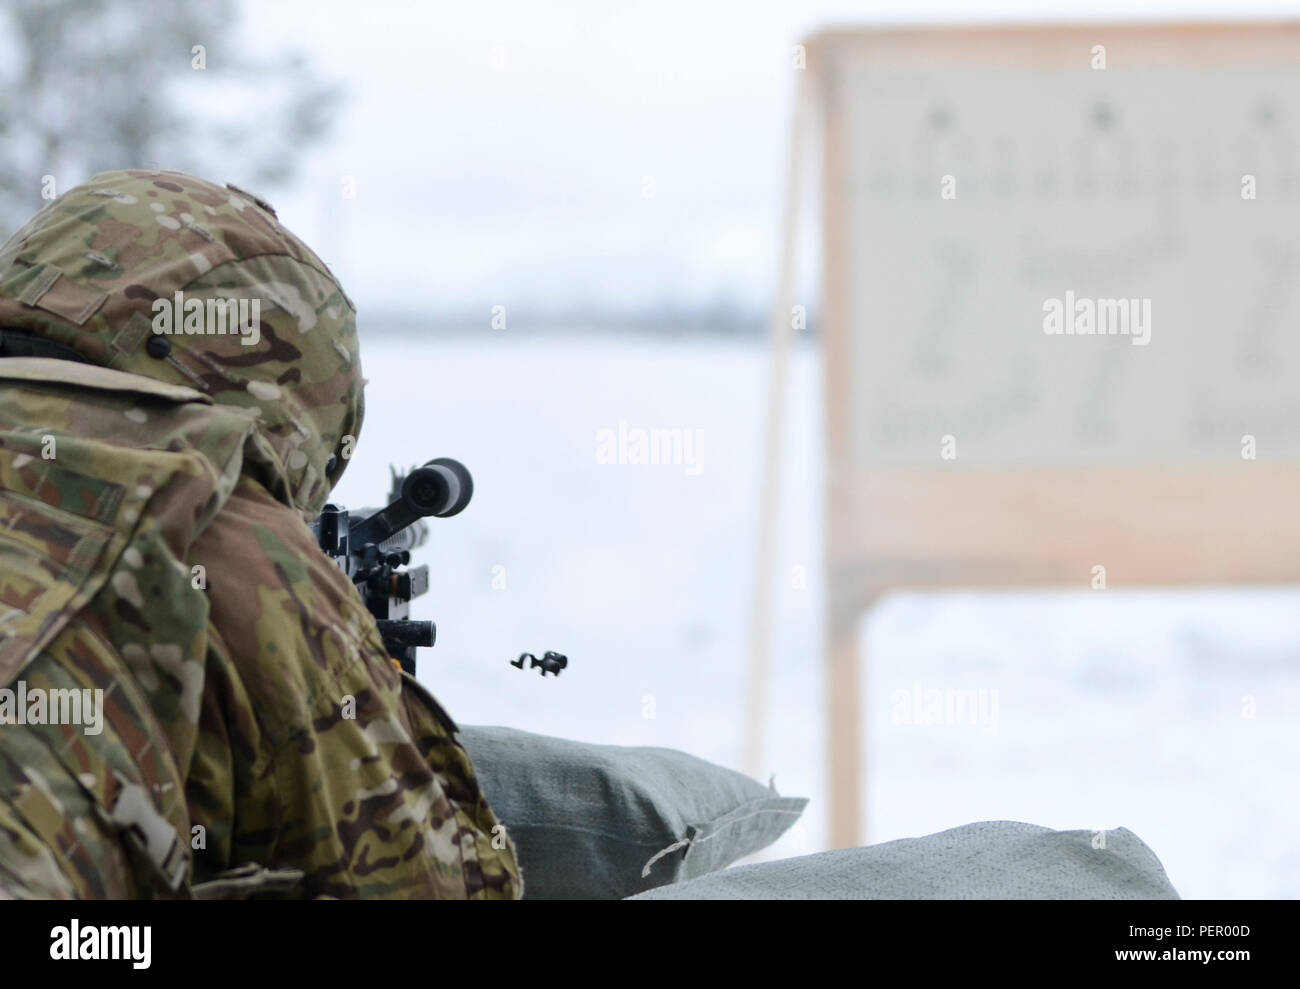 A clip is ejected from an M240 machine gun as a Soldier of 3rd Squadron, 2nd Cavalry Regiment, stationed at Vilseck, Germany, fires the weapon during a training exercise at Adazi Training Area in Latvia, Jan. 25, 2016. (U.S. Army photo by Staff Sgt. Steven Colvin/Released) - Stock Image